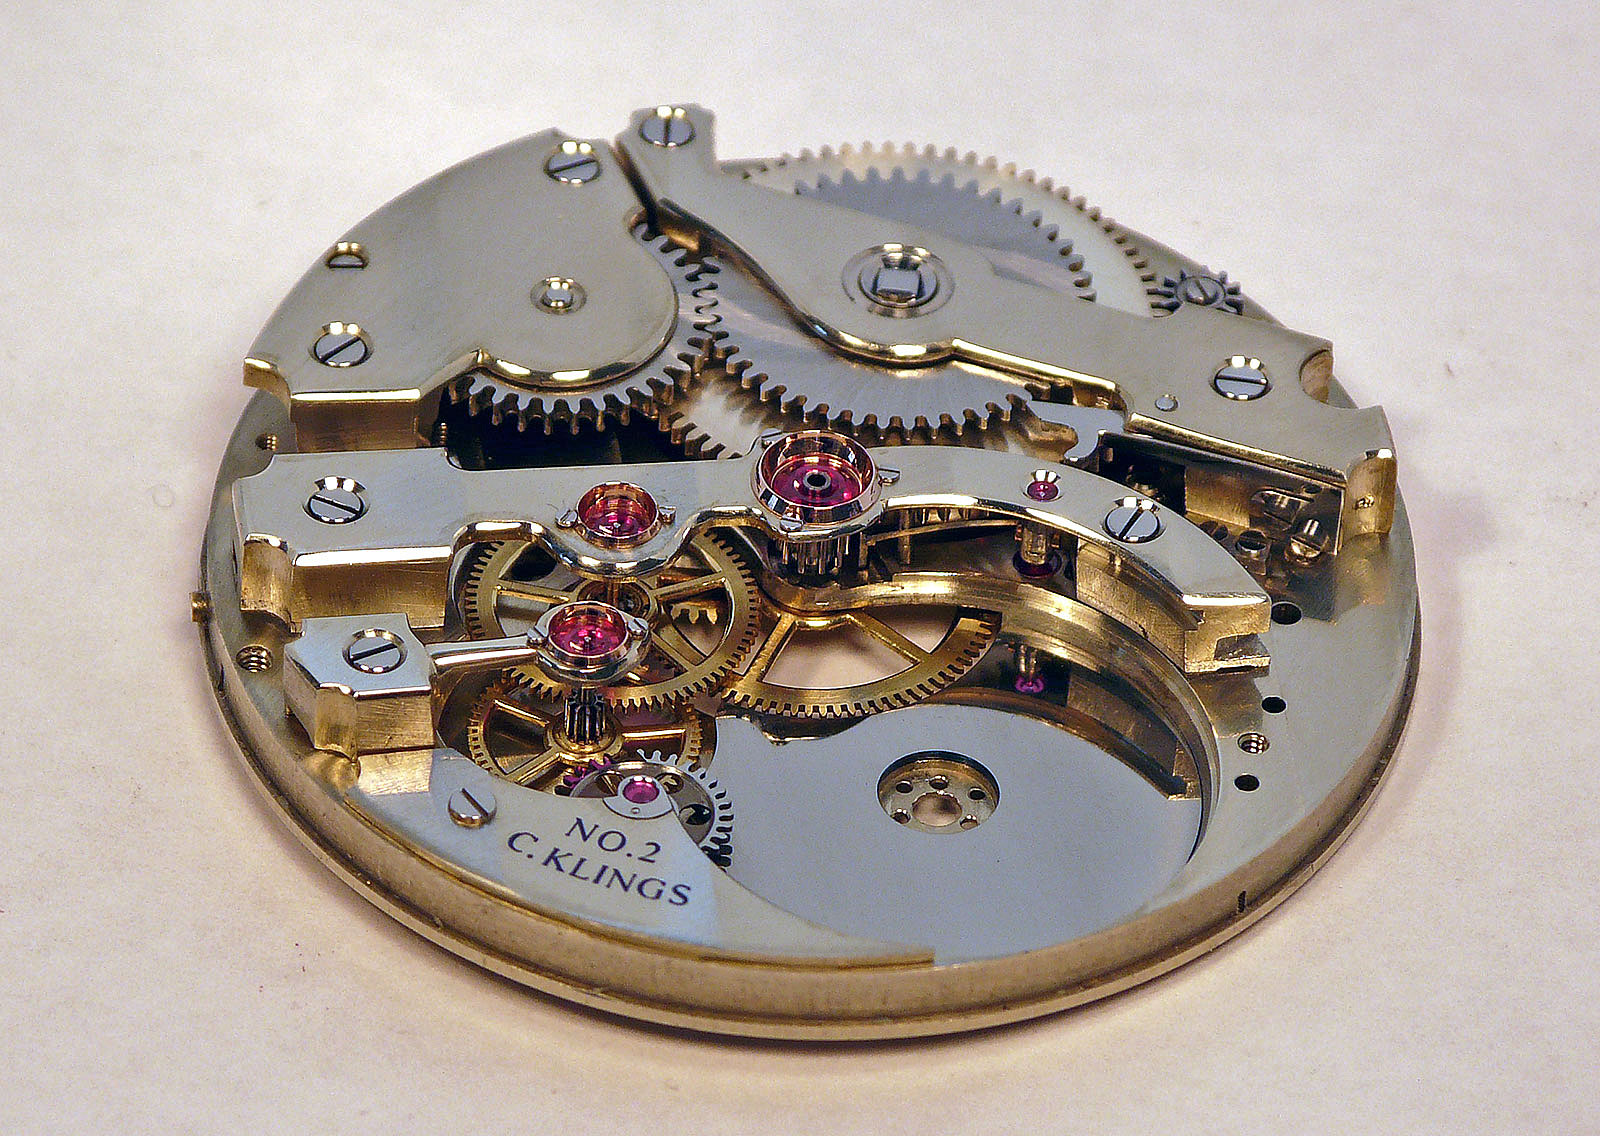 Christian Klings Tourbillon Nr. 2 - 1